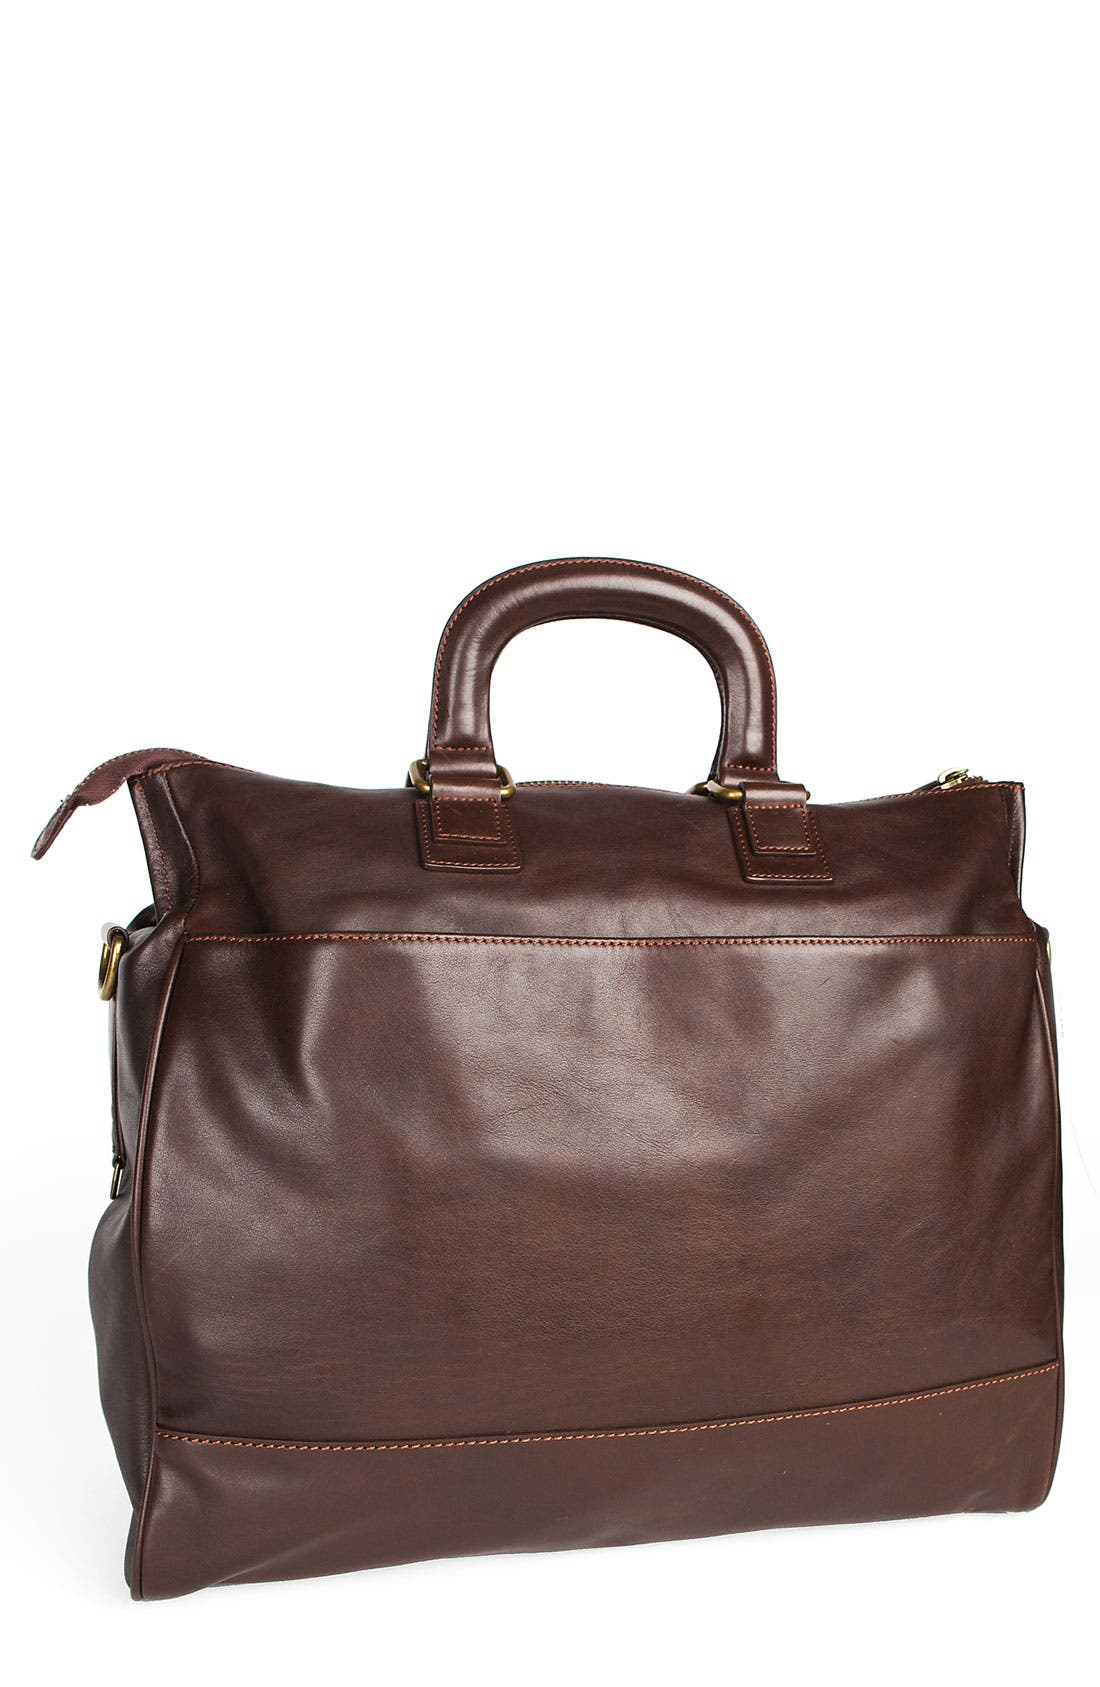 Alternate Image 1 Selected - Bosca Carryall Tote